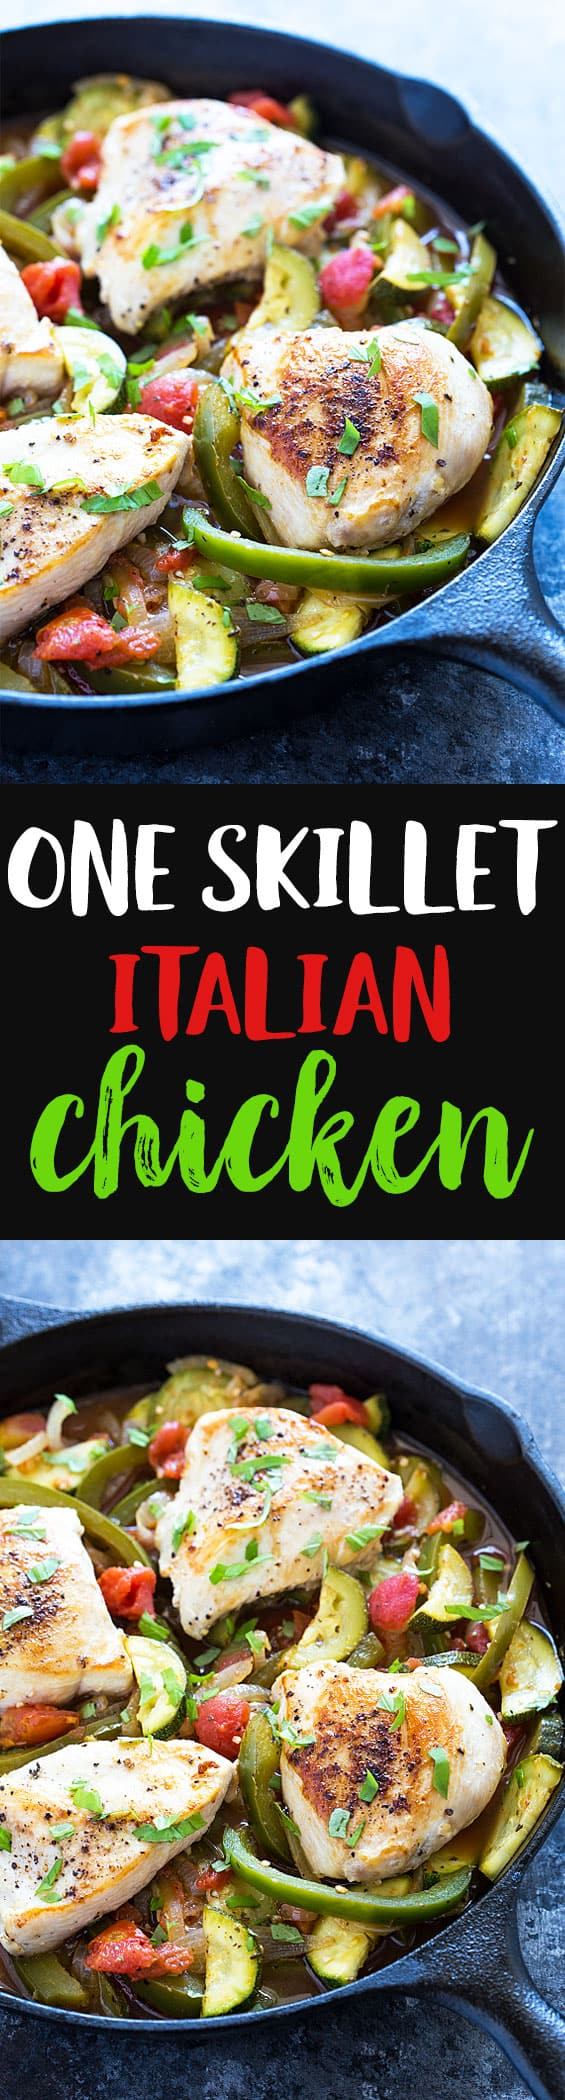 EASY One Skillet Italian Chicken - Full of healthy veggies, lean chicken and with minimal cleanup!